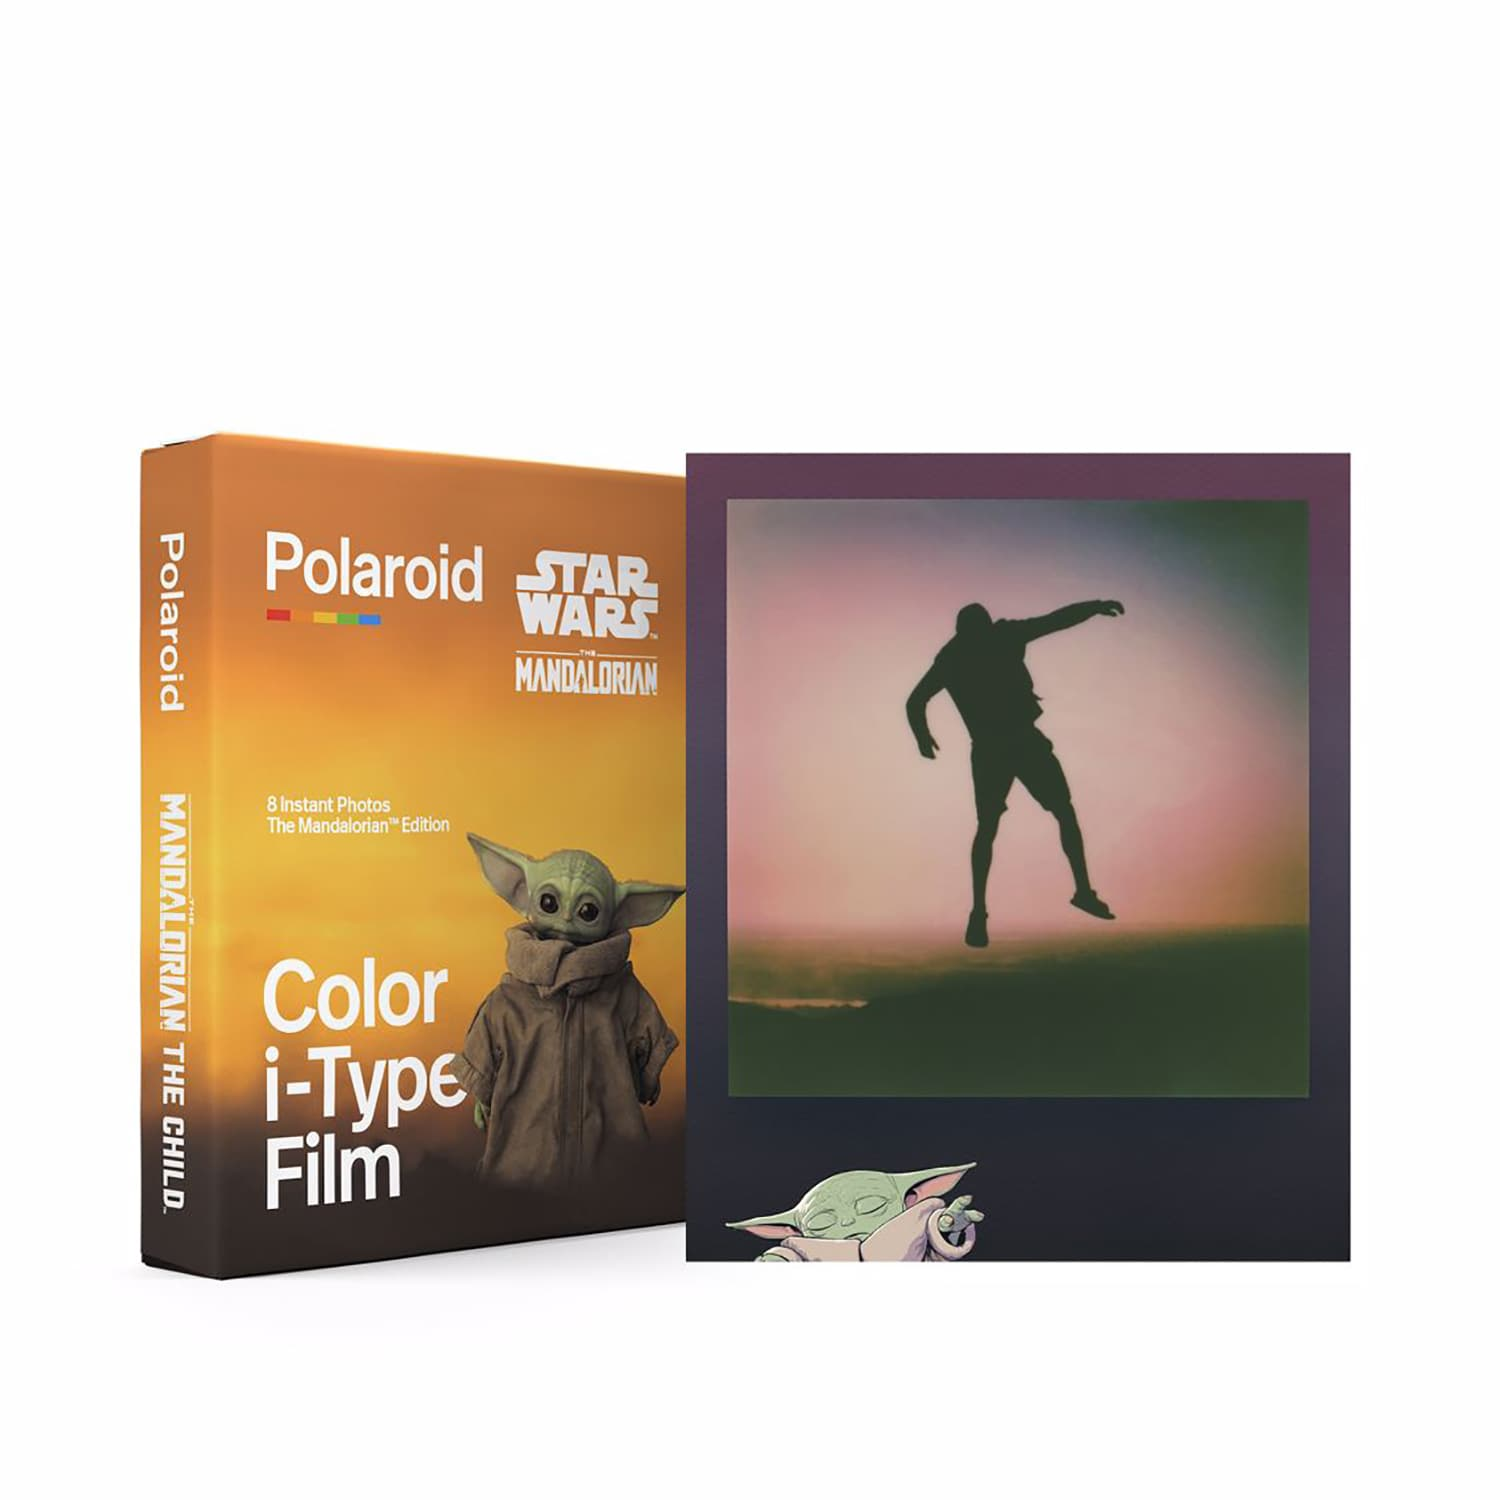 Polaroid Now Star Wars Mandalorian Limited Edition